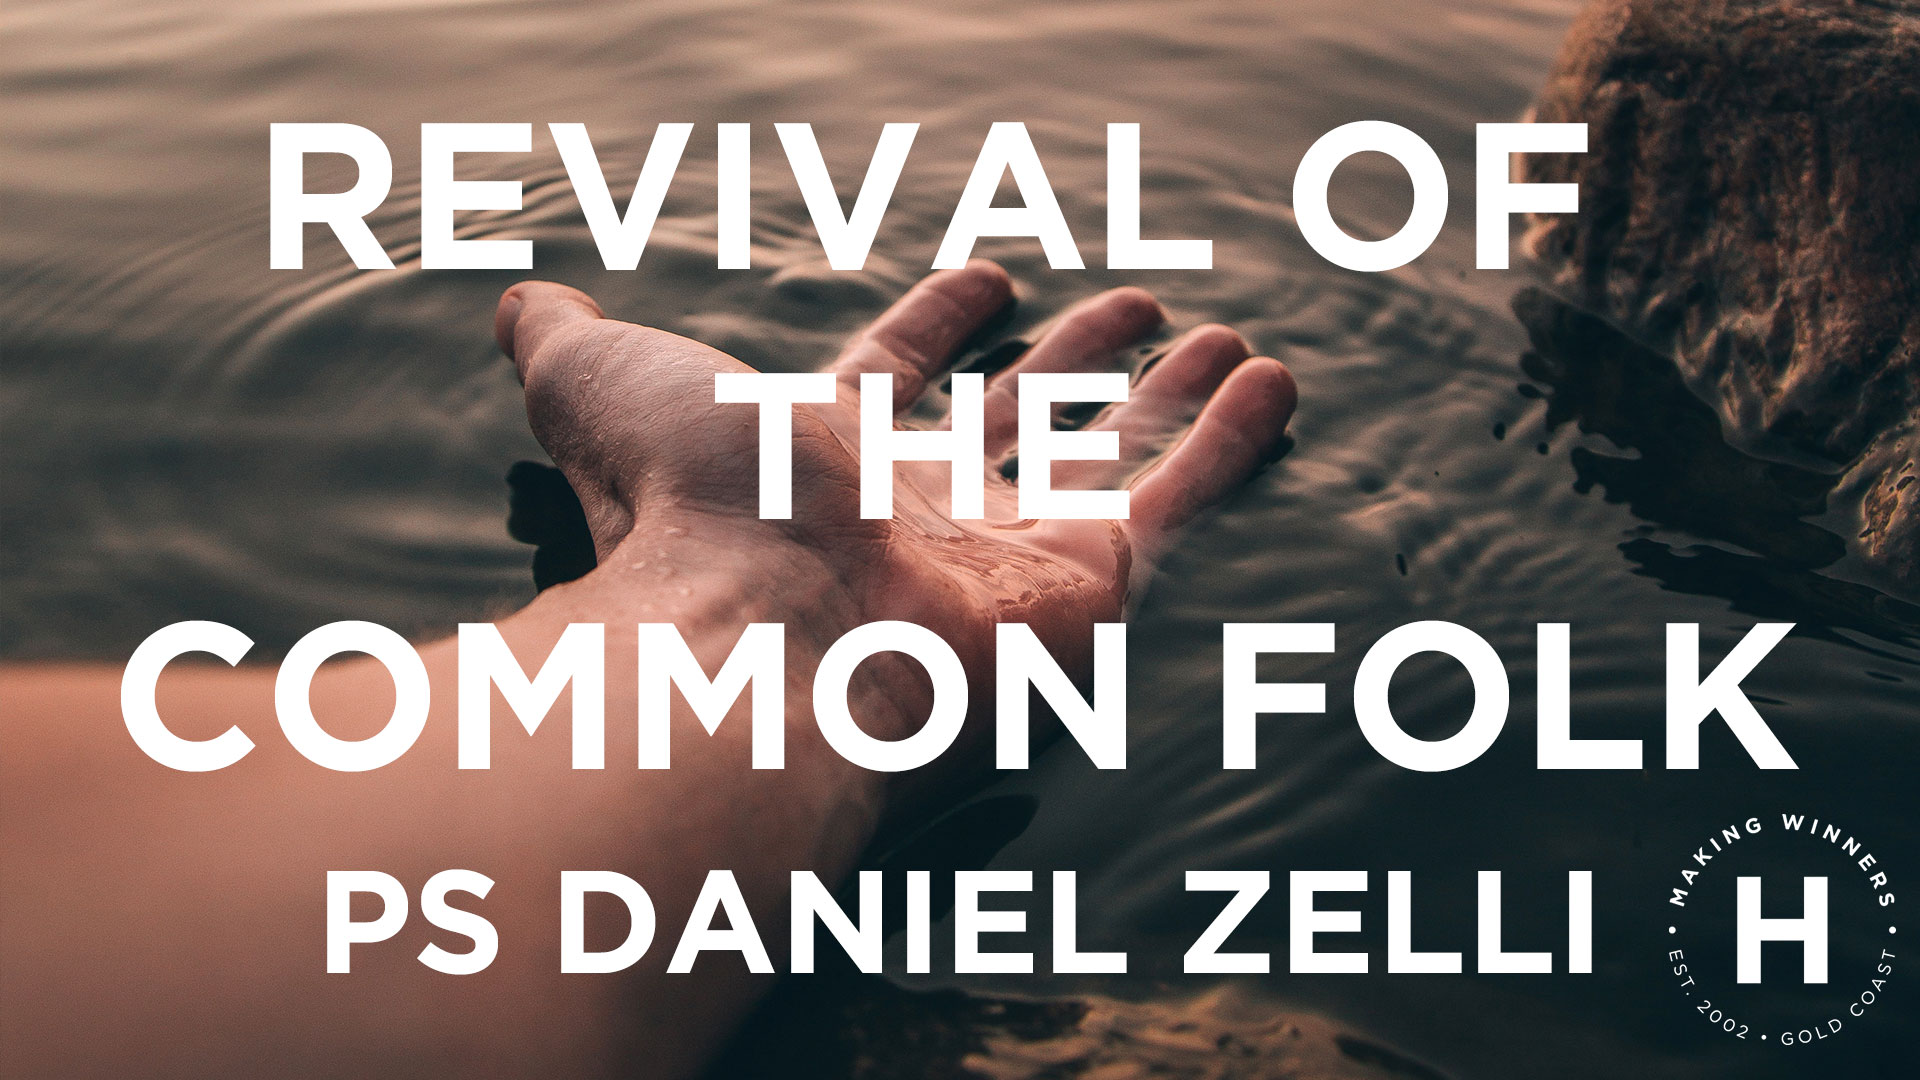 Revival of the Common Folk